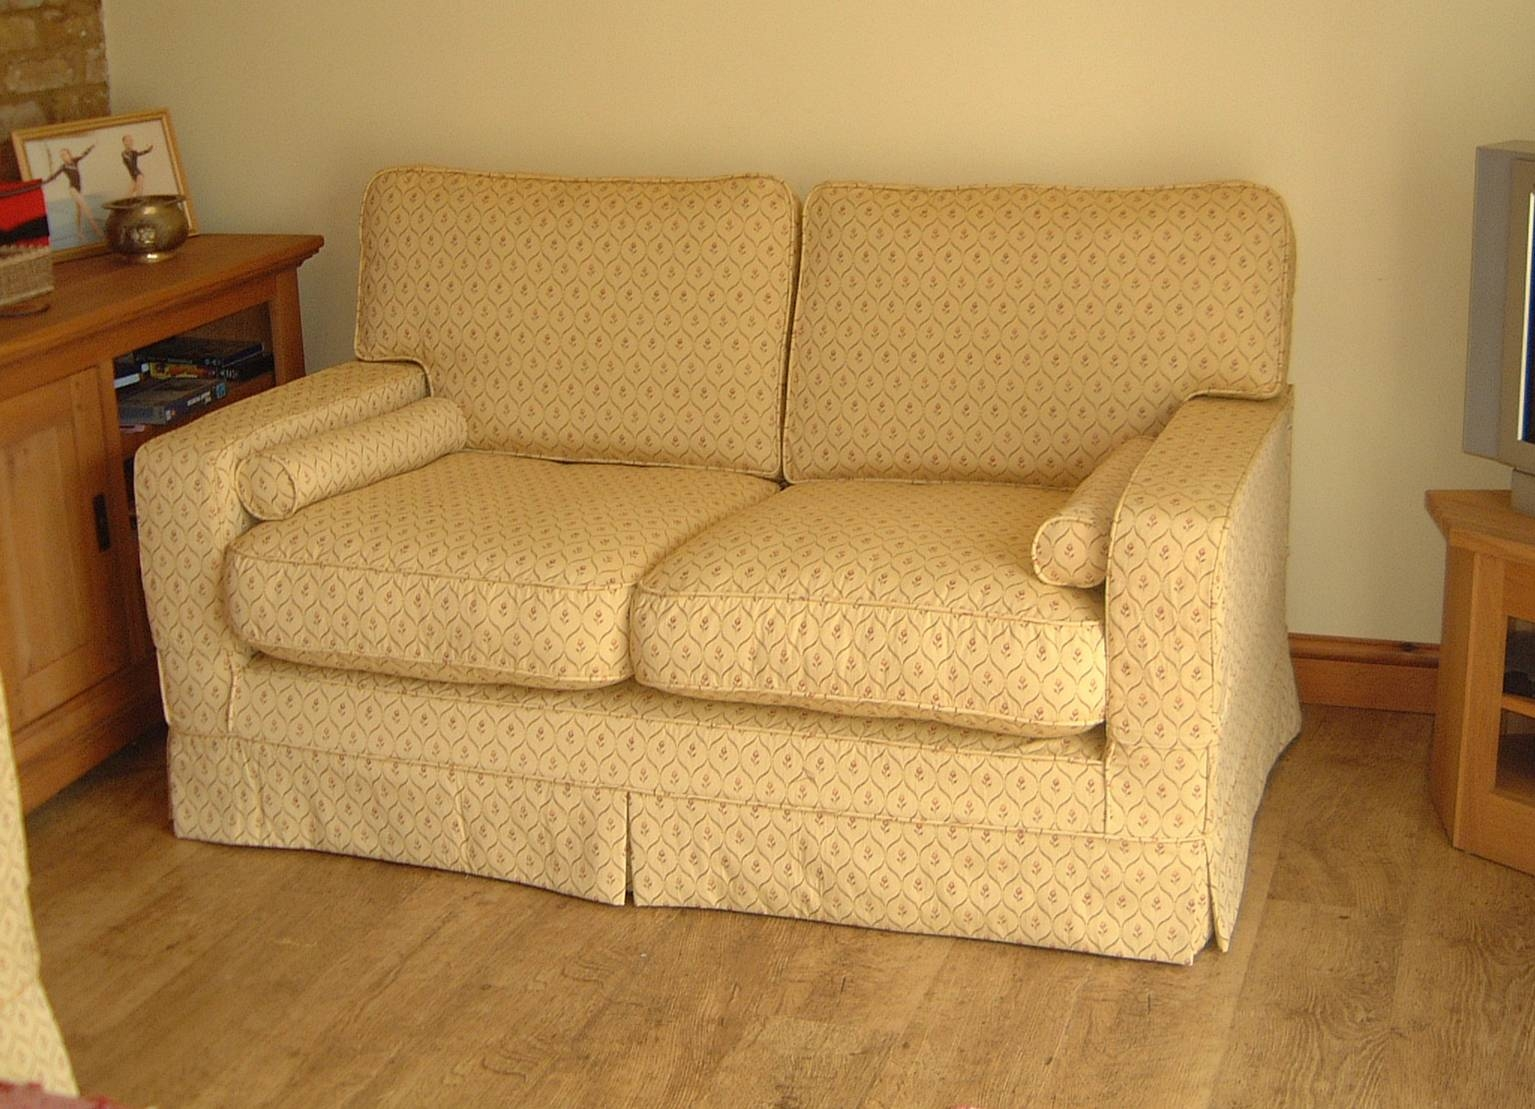 Loose Covers - 'loose Covers' - Gallery throughout Sofas With Removable Covers (Image 14 of 30)